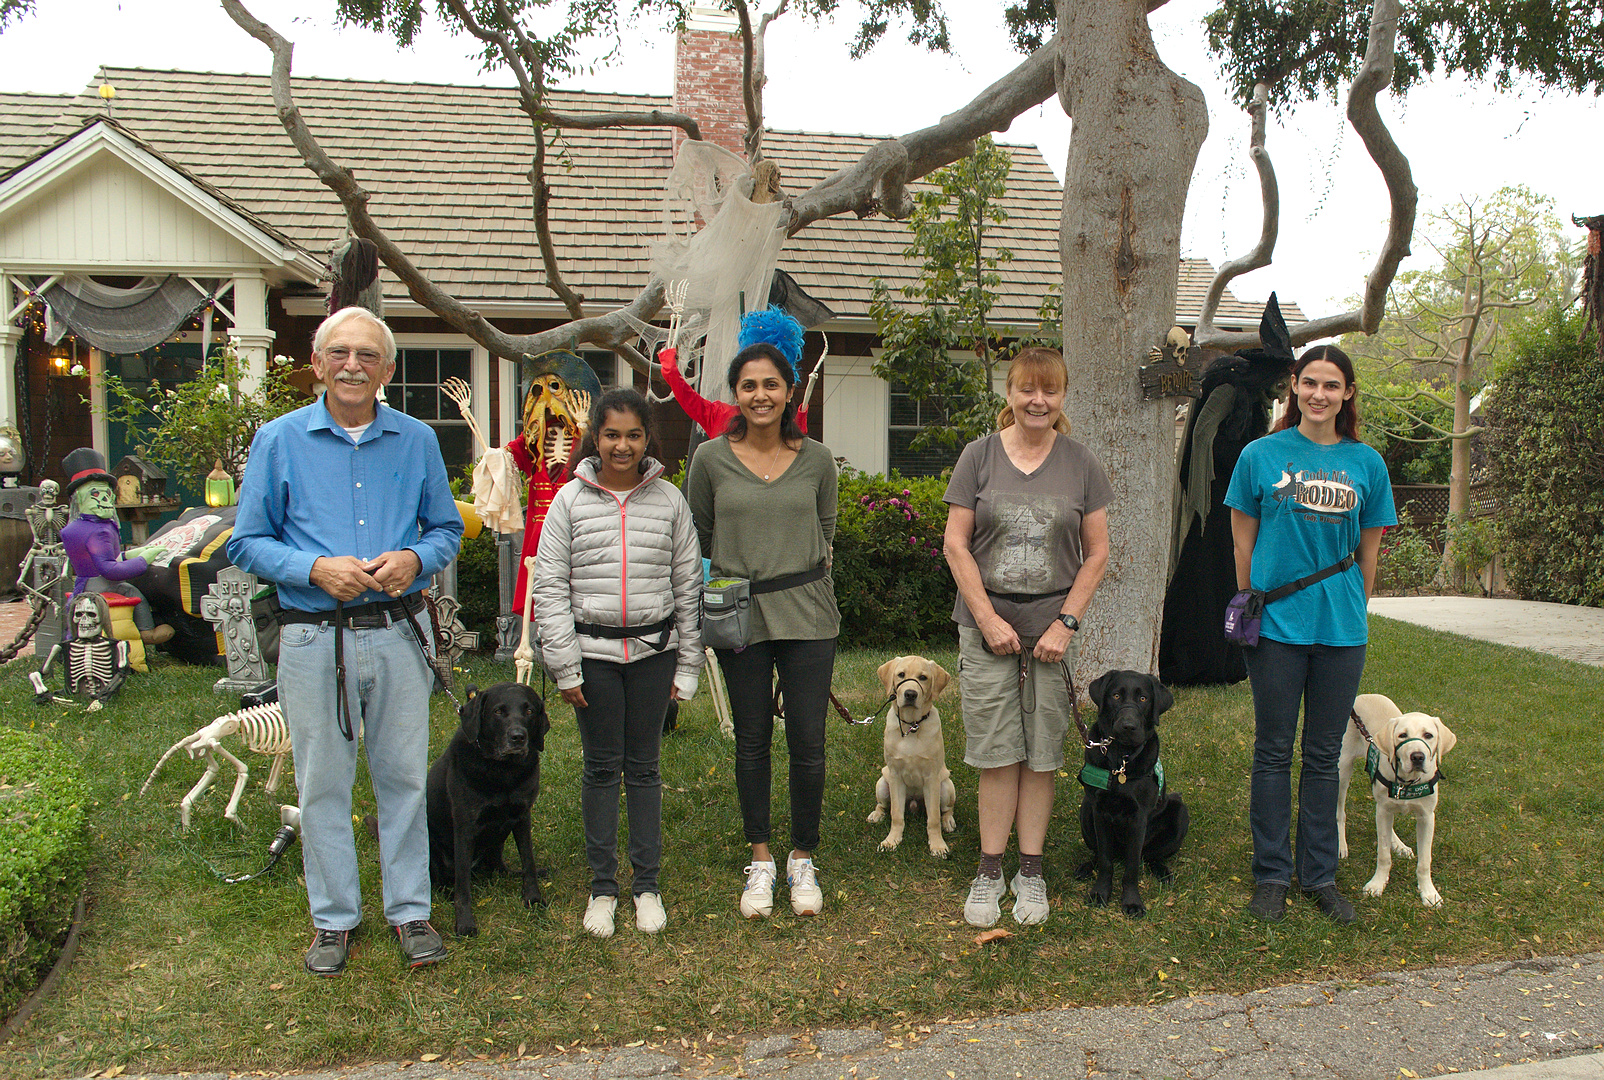 Tom with Calypso, Avanthi & Daya with Dover, Brenda with Dash, Elizabeth with Milo